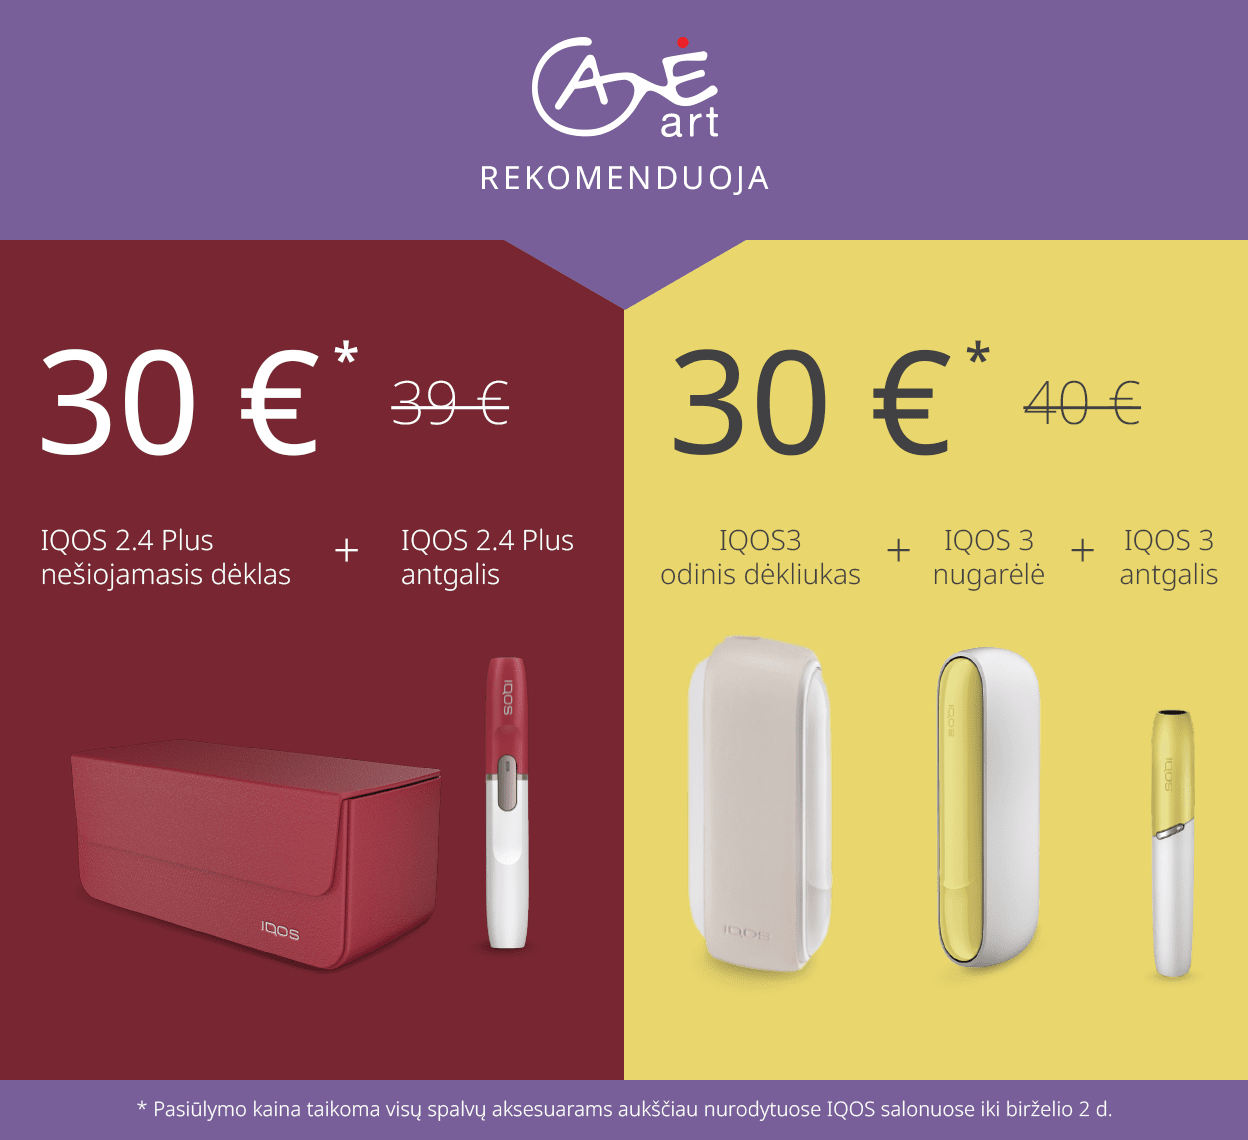 IQOS offer, IQOS discount, IQOS accessories